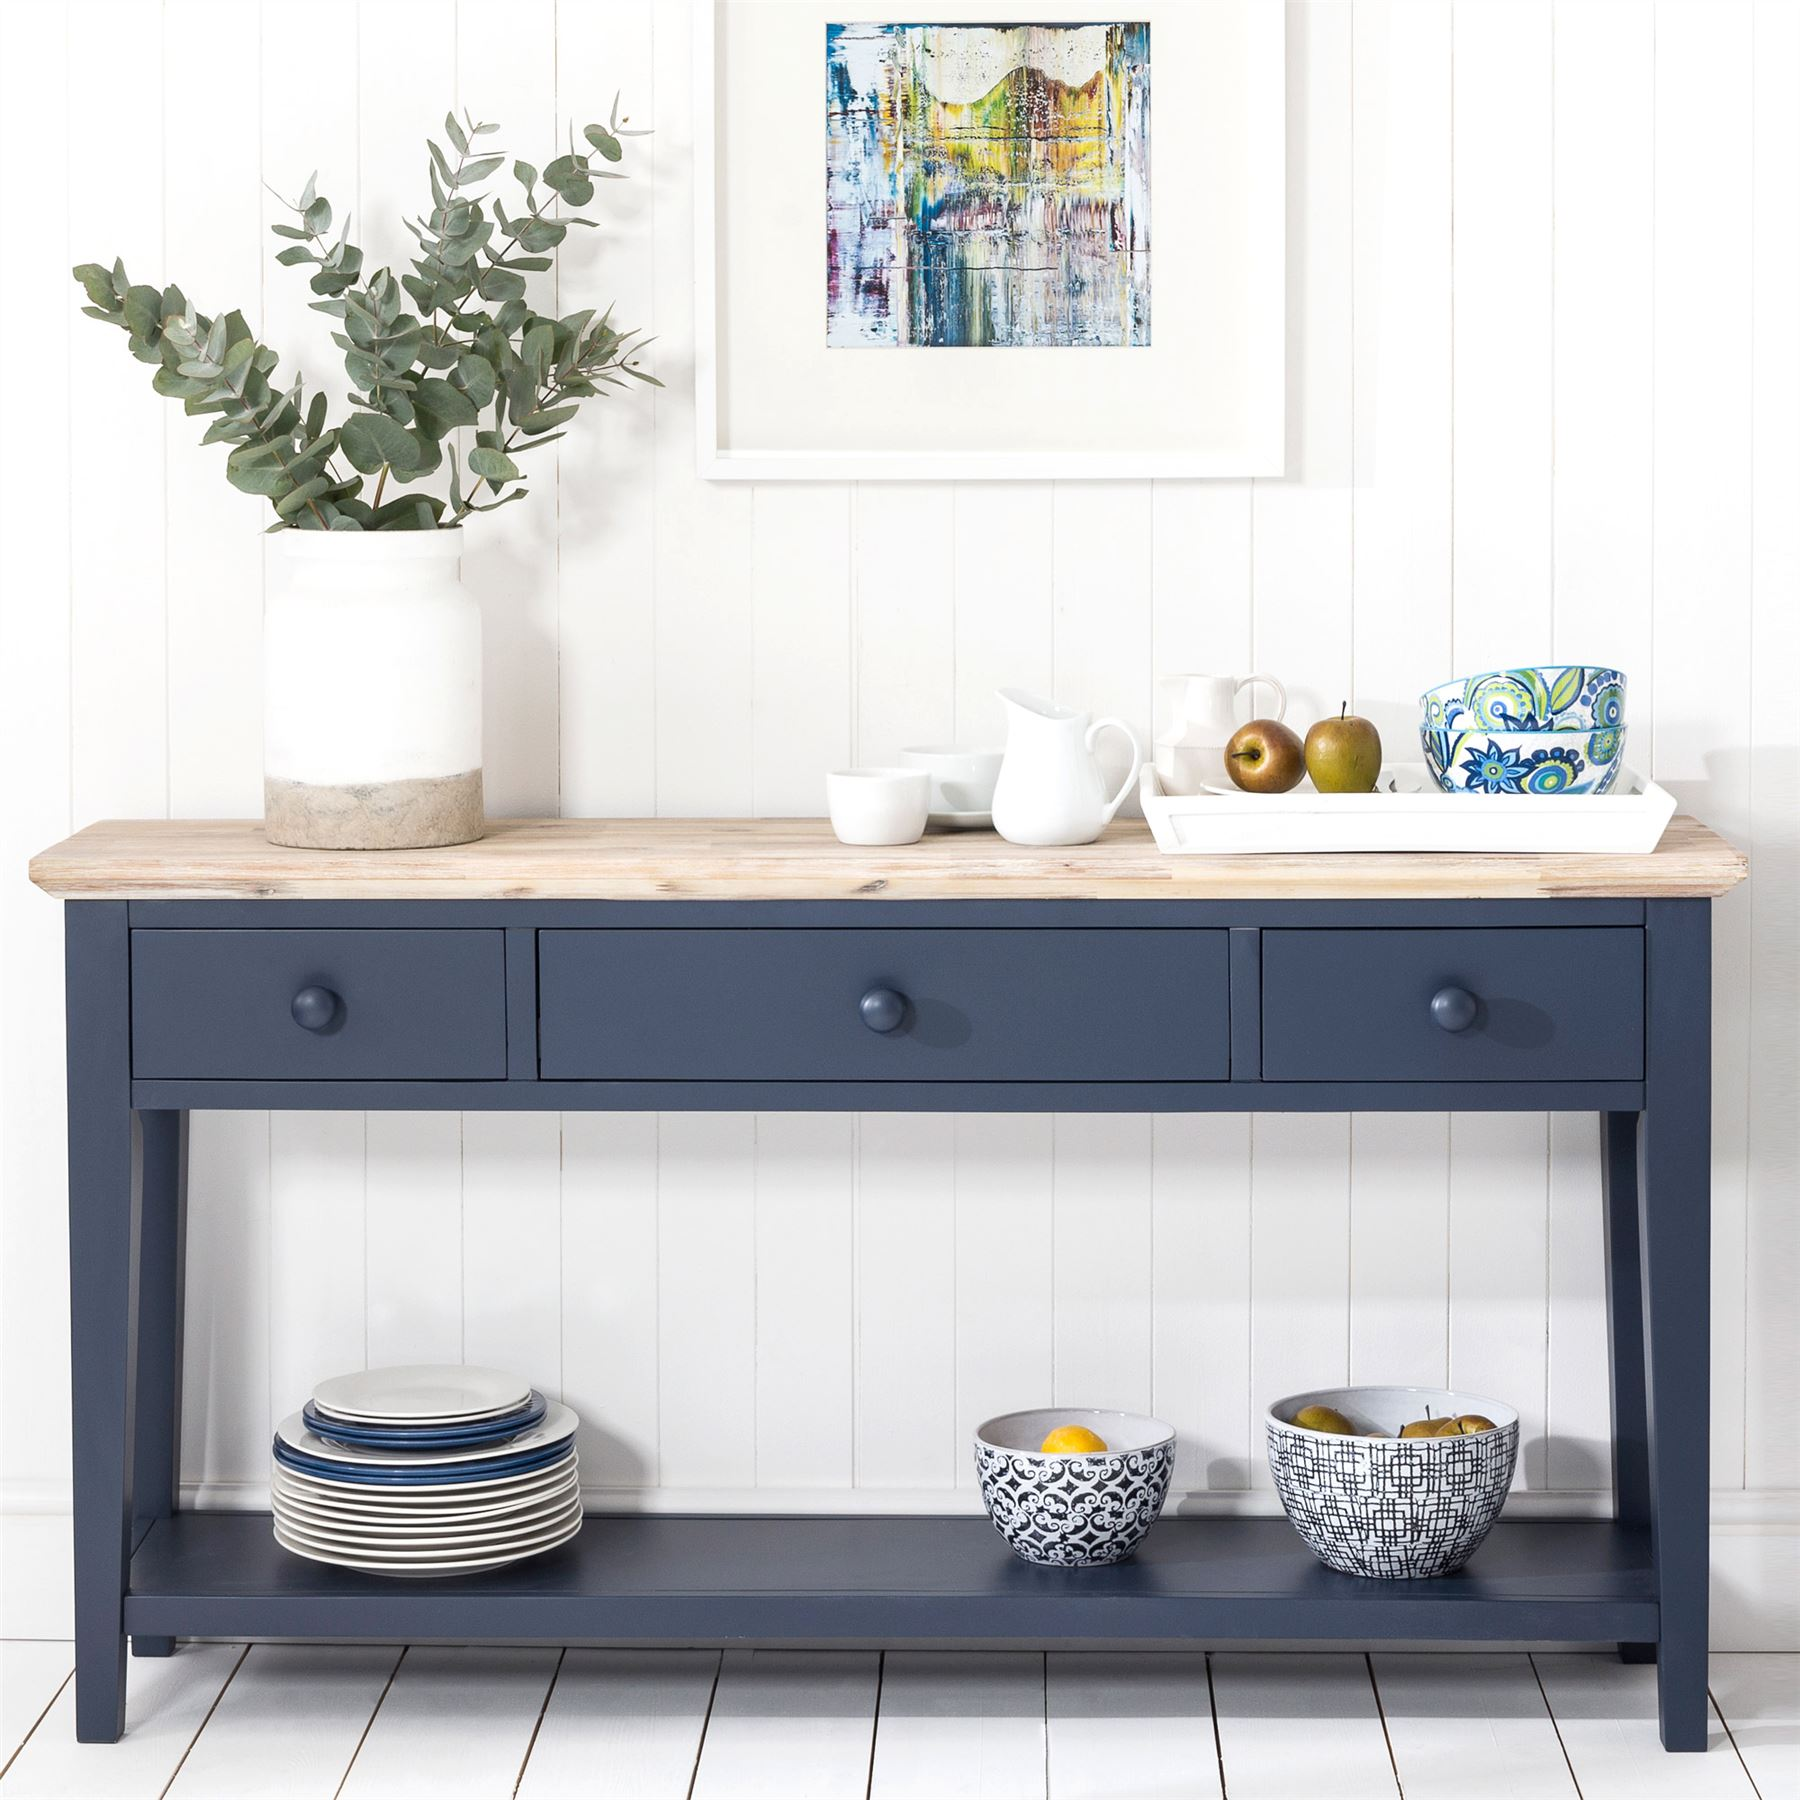 Details About Florence Navy Blue Console Table Kitchen Hallway Console Table 3 Drawers Shelf